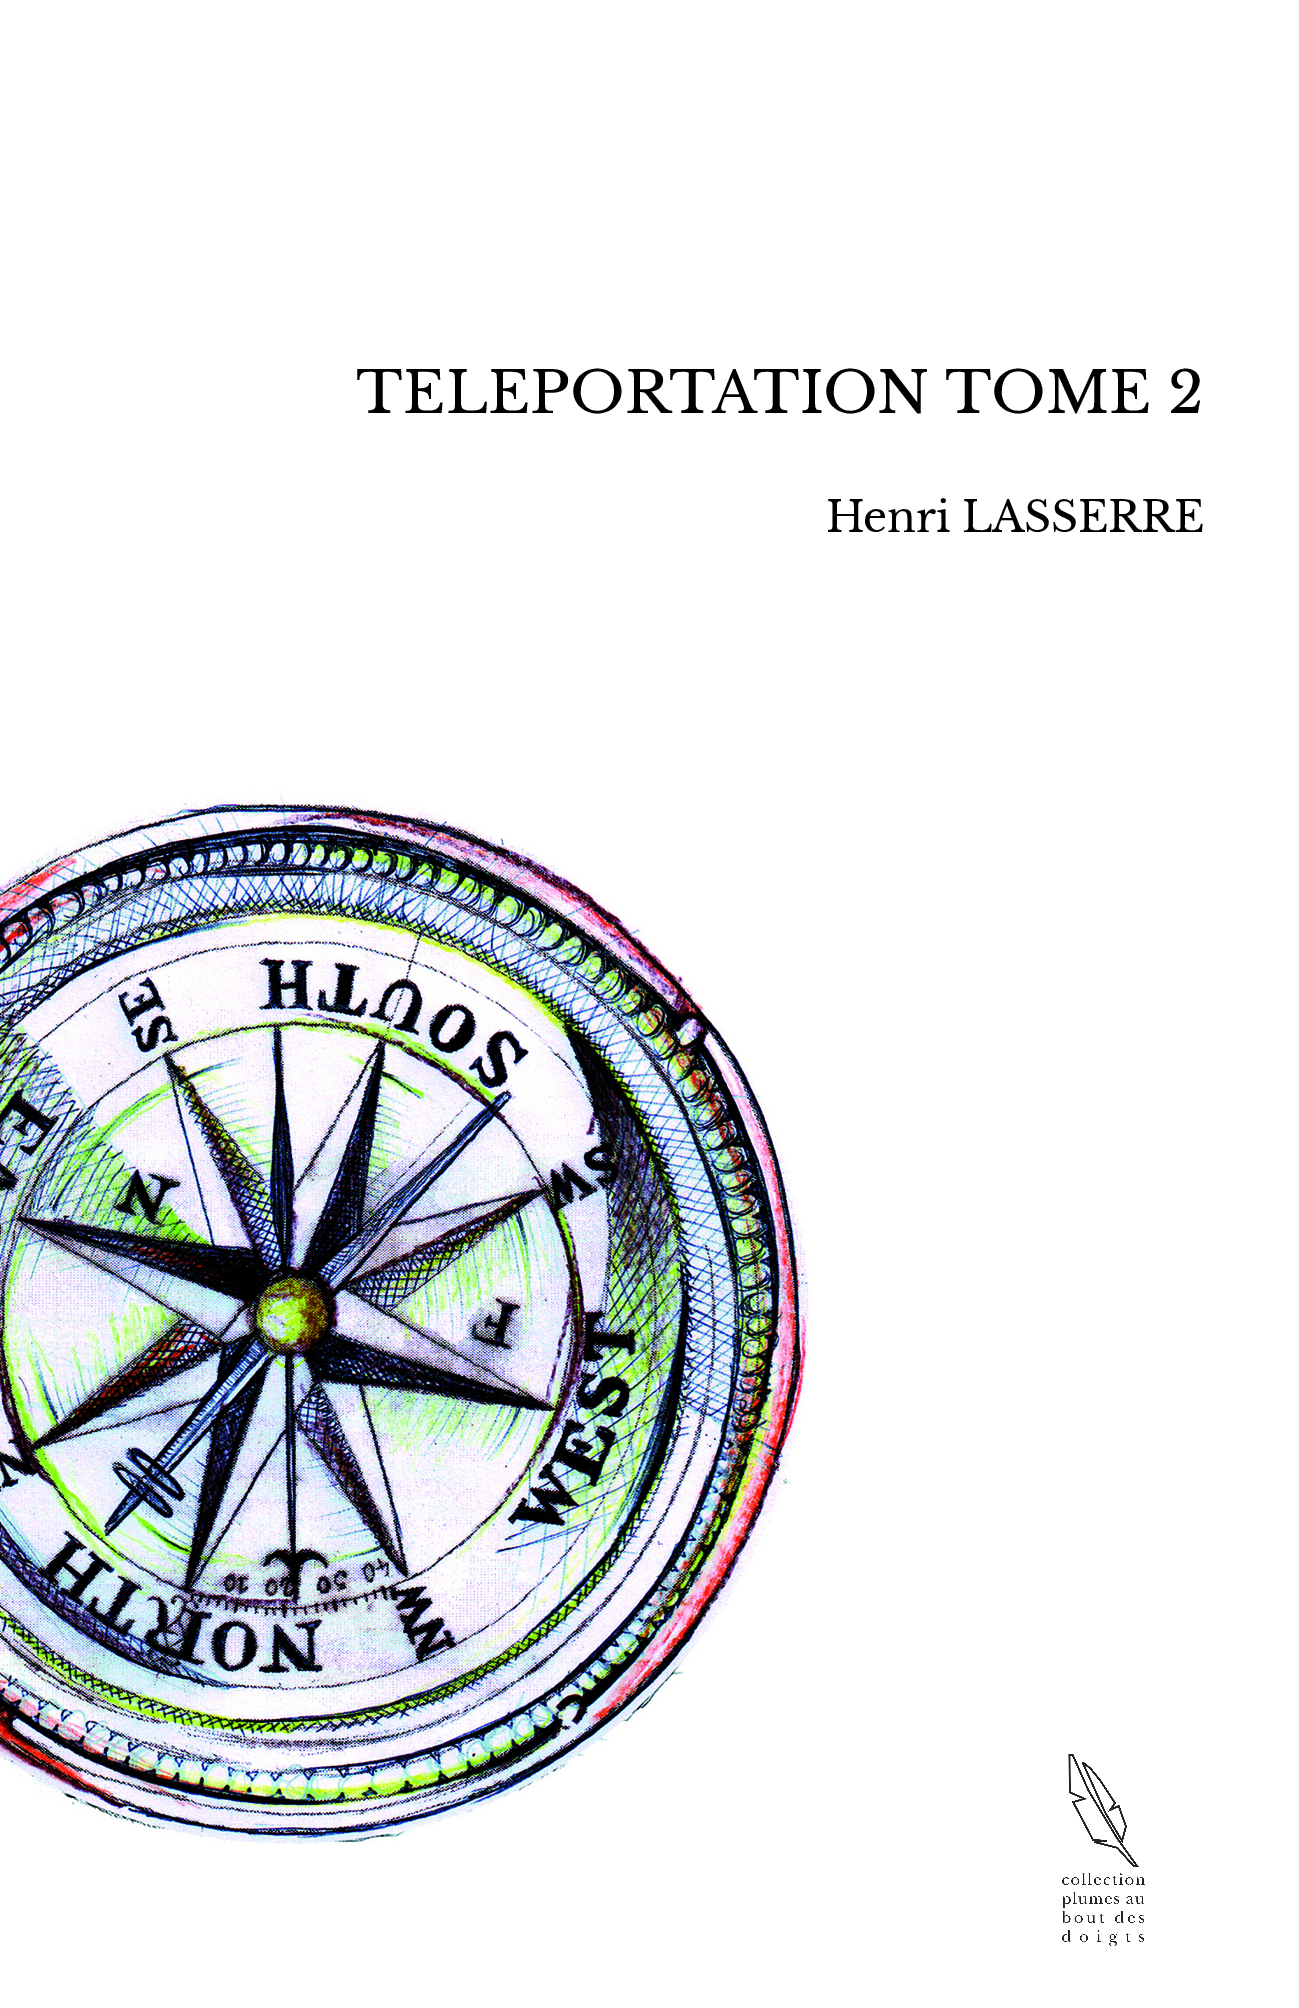 TELEPORTATION TOME 2